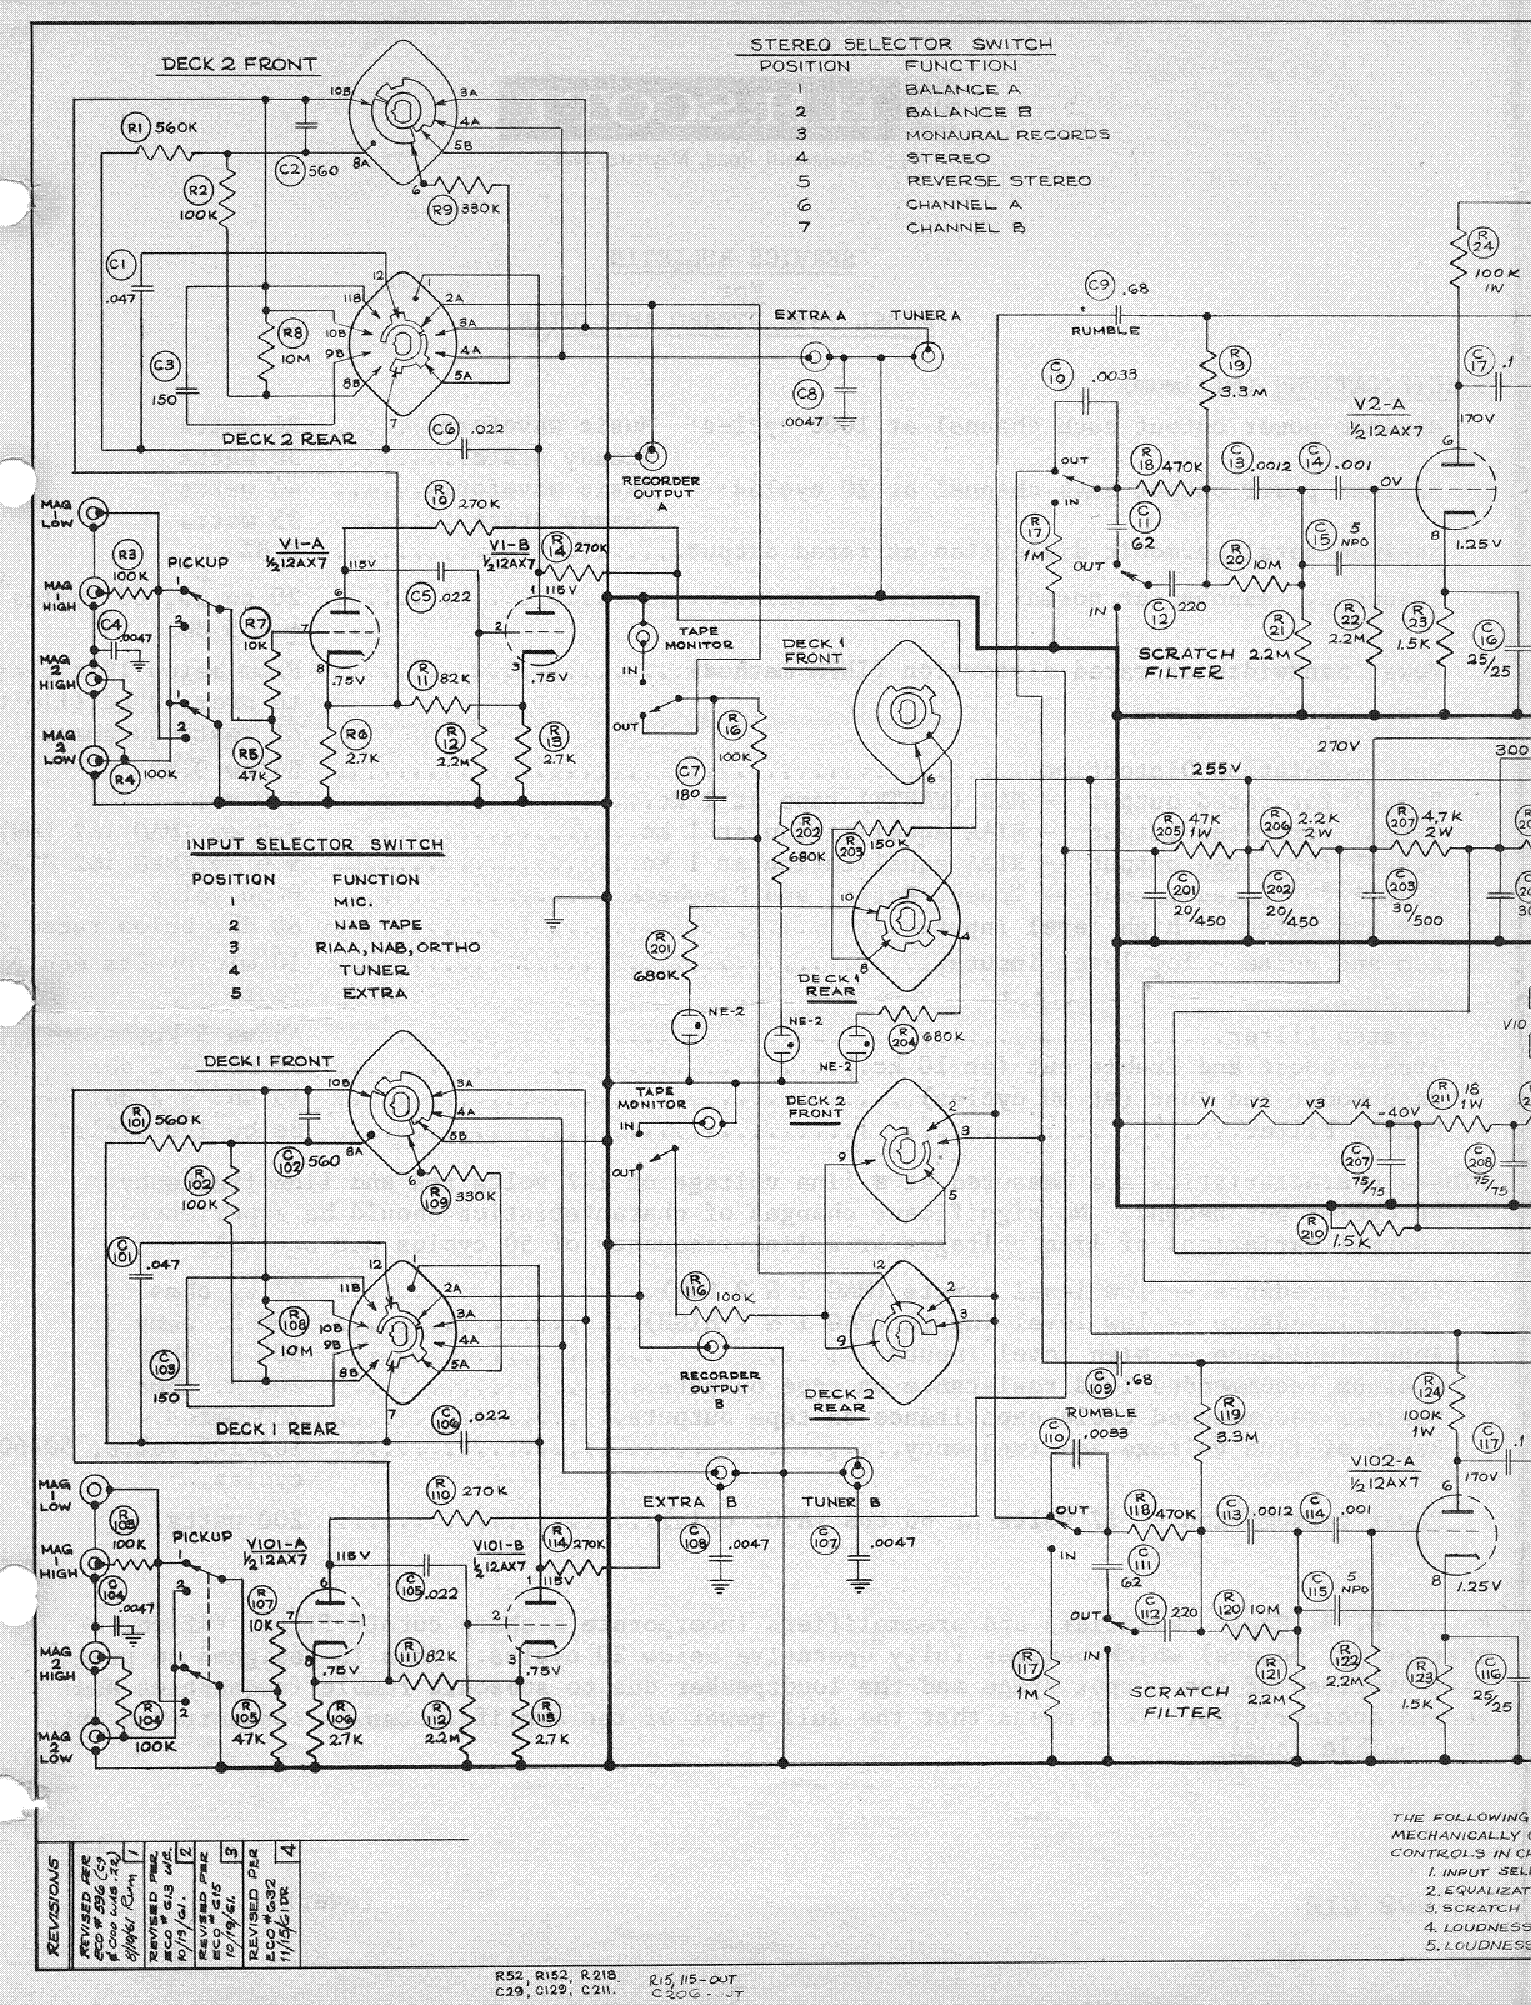 SCOTT 299C SCH Service Manual download, schematics, eeprom